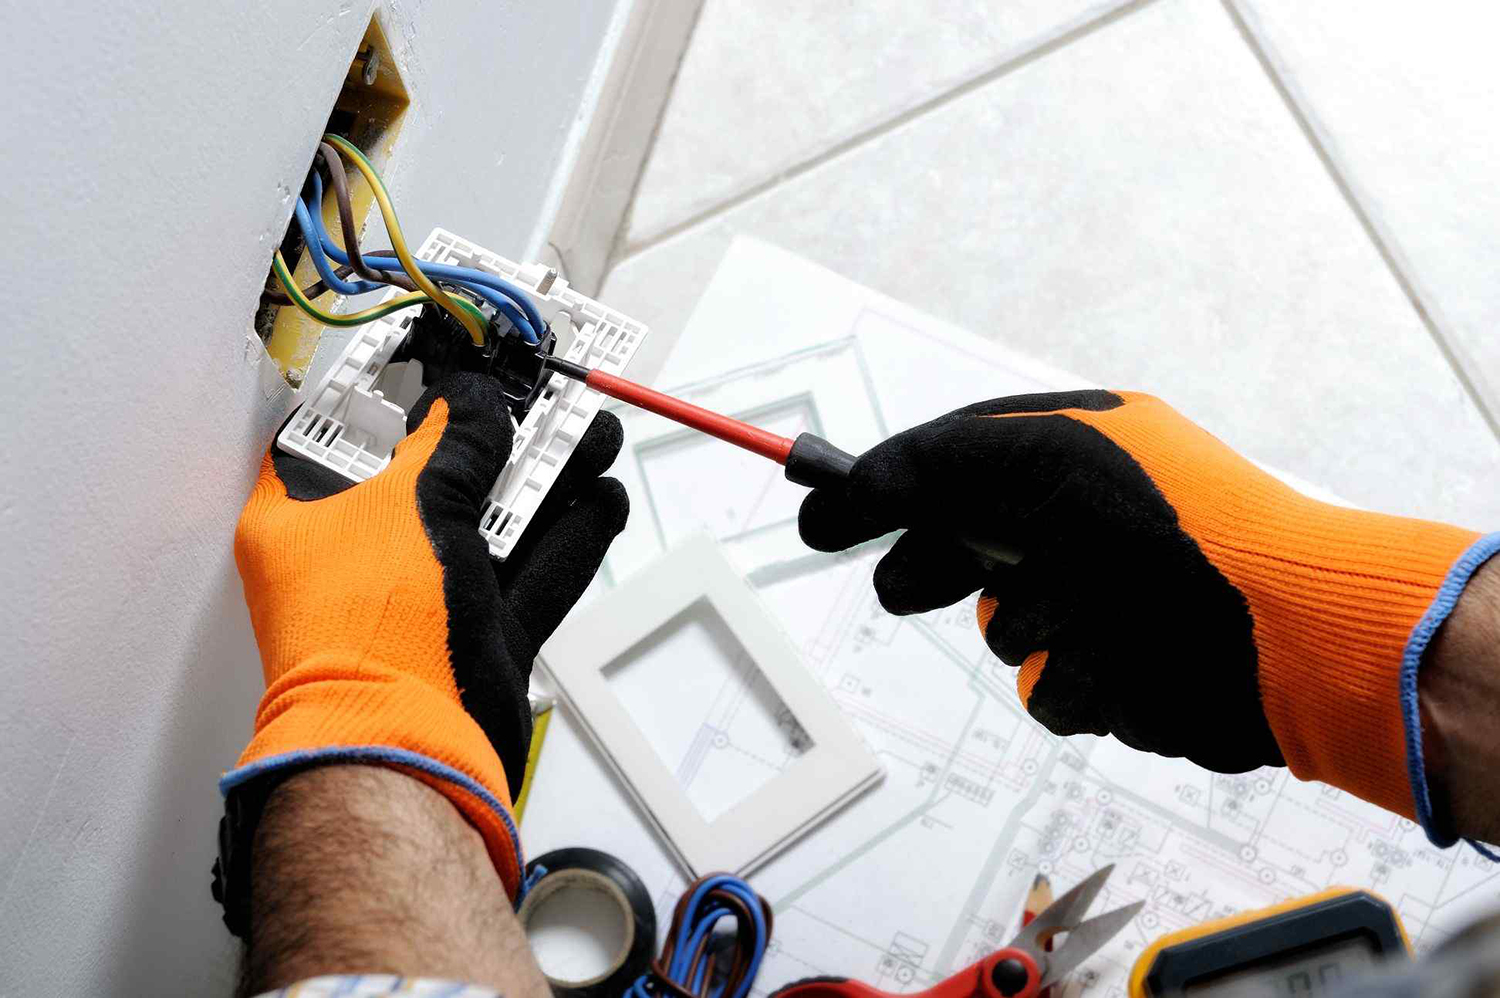 Electrical Repair Services in Northern Virginia